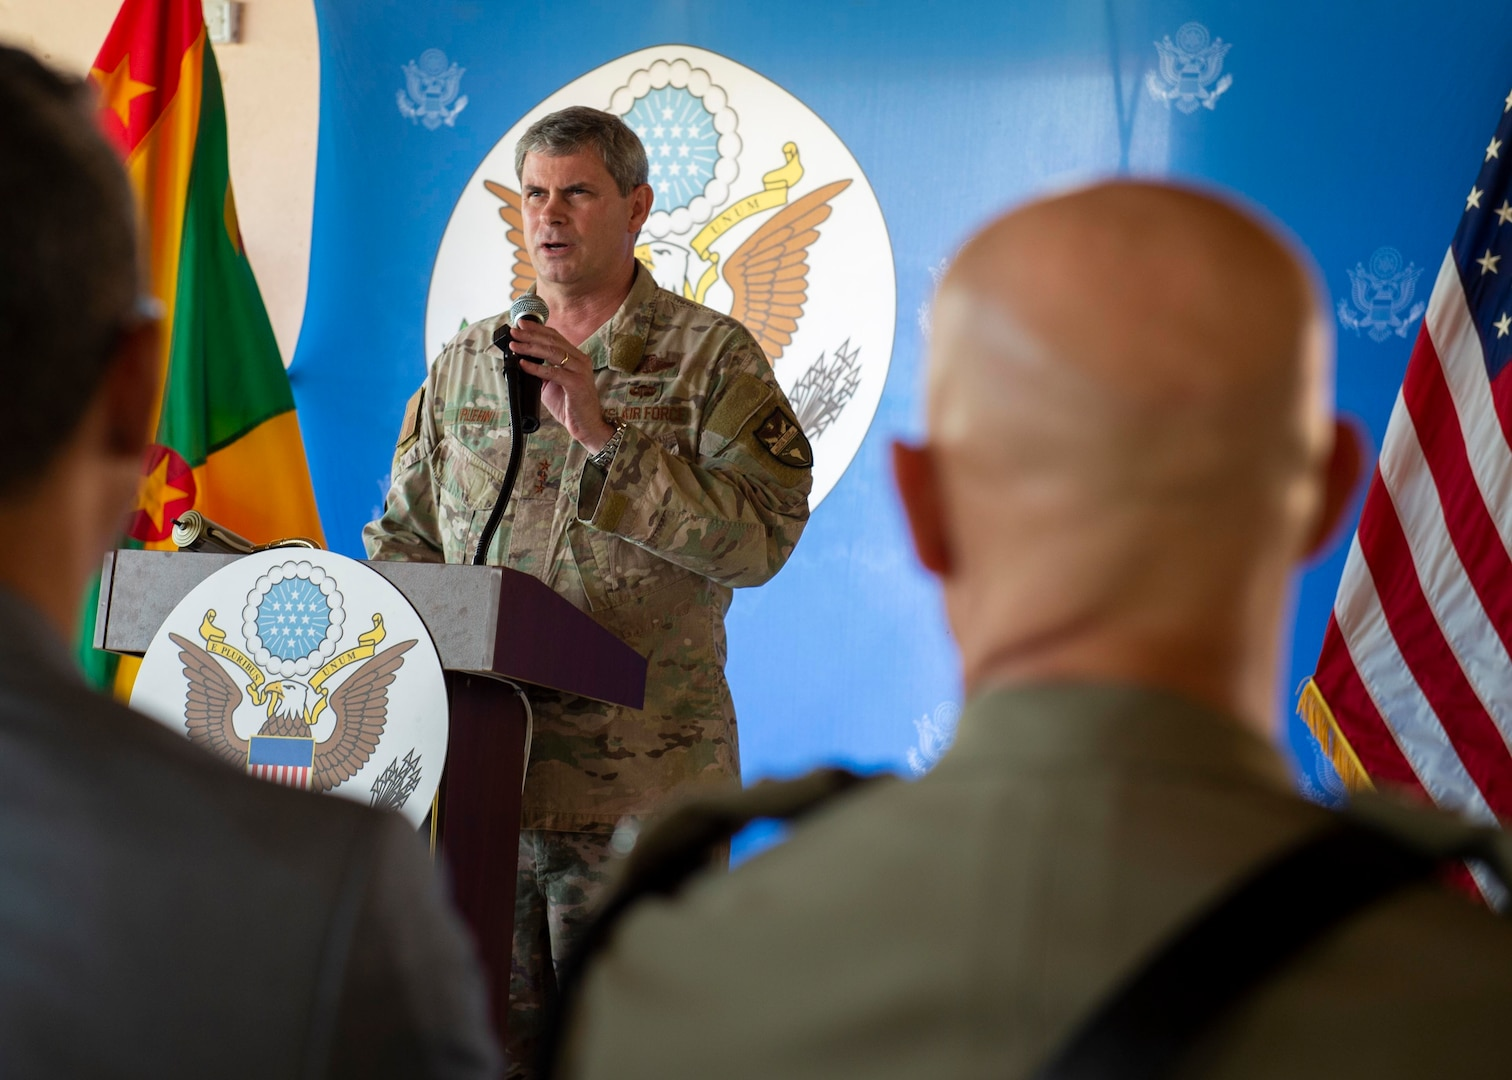 Lt. Gen. Michael T. Plehn speaks during the closing ceremony for the hospital ship USNS Comfort's eight-day medical mission in Grenada.